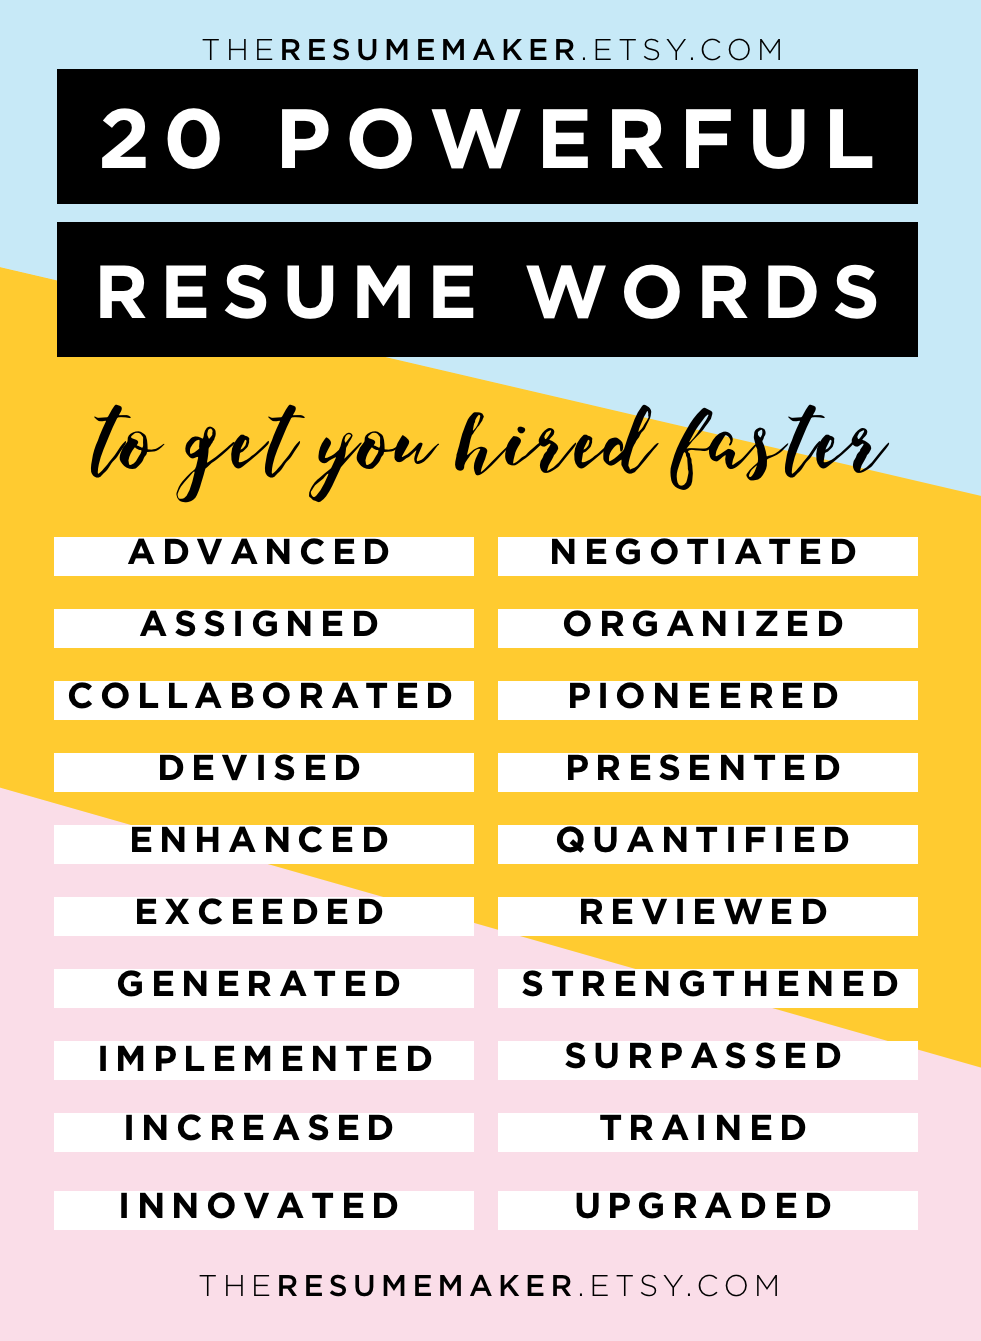 Resume Power Words, Free Resume Tips, Resume Template